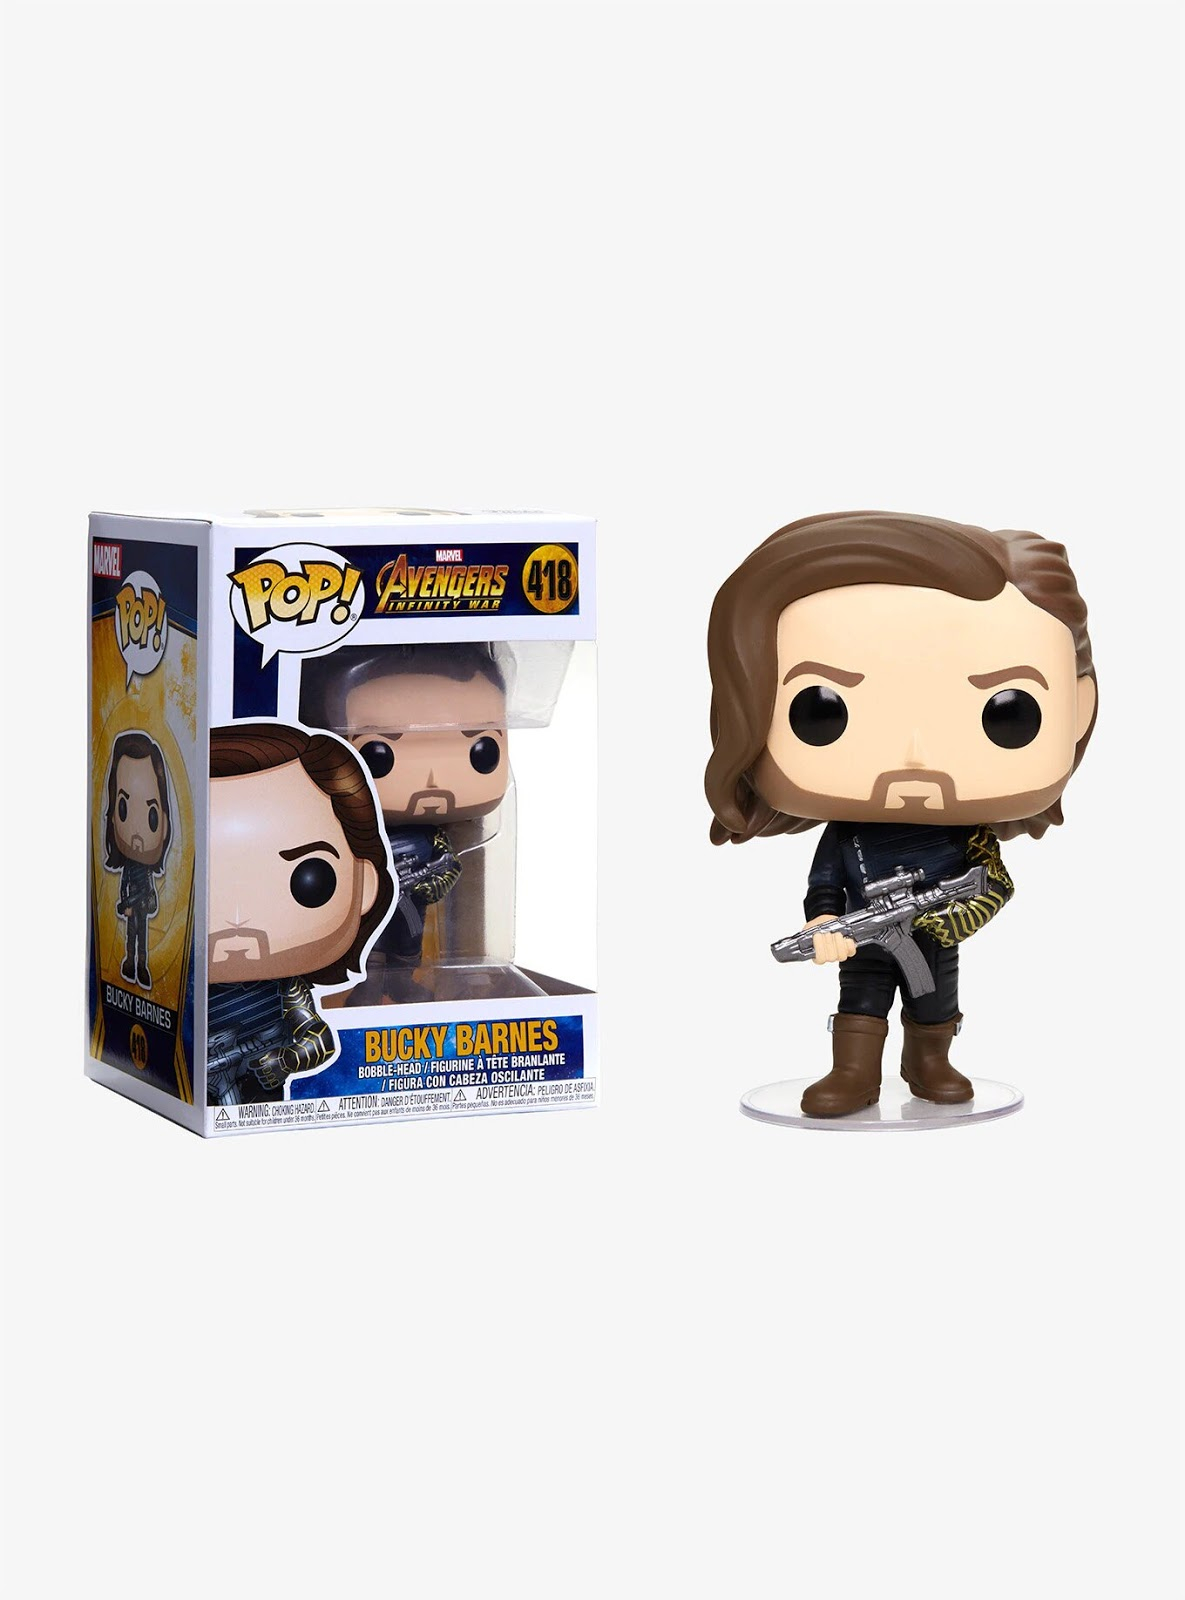 Boxlunch Funko Pop Sale Laughingplace Com